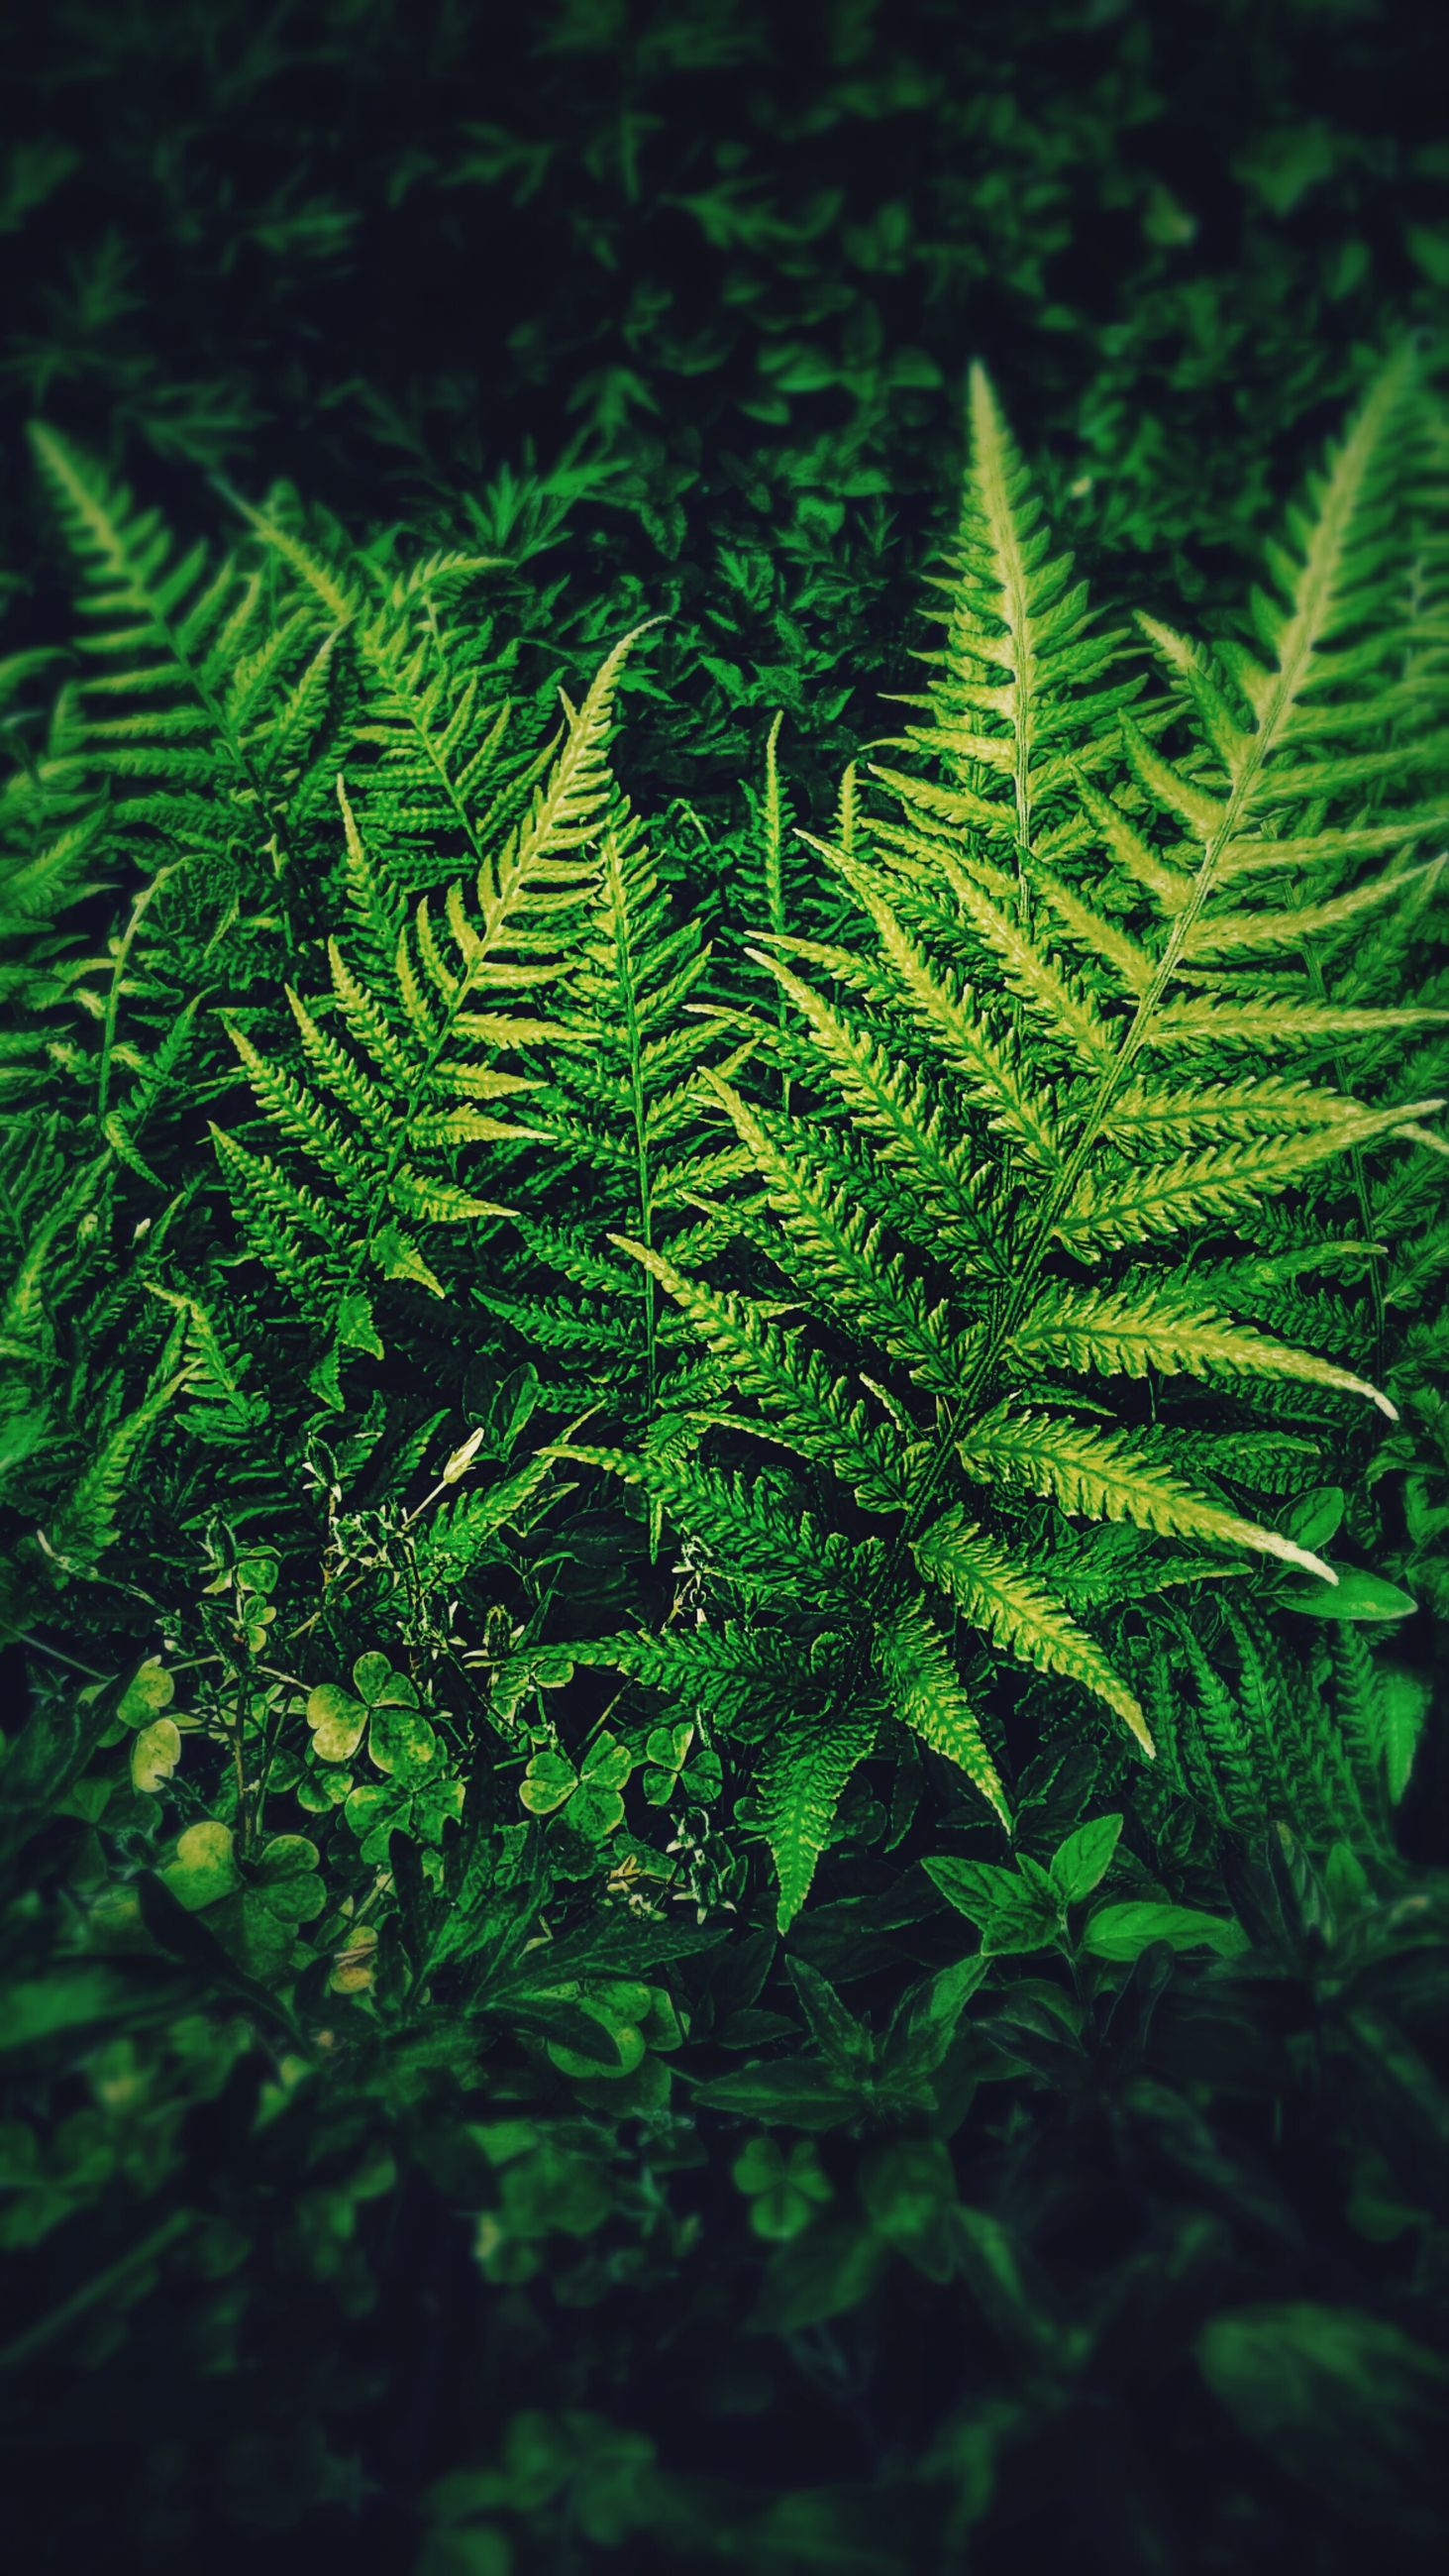 green color, growth, leaf, nature, plant, close-up, beauty in nature, natural pattern, fern, tranquility, green, full frame, backgrounds, no people, outdoors, freshness, pattern, lush foliage, day, growing